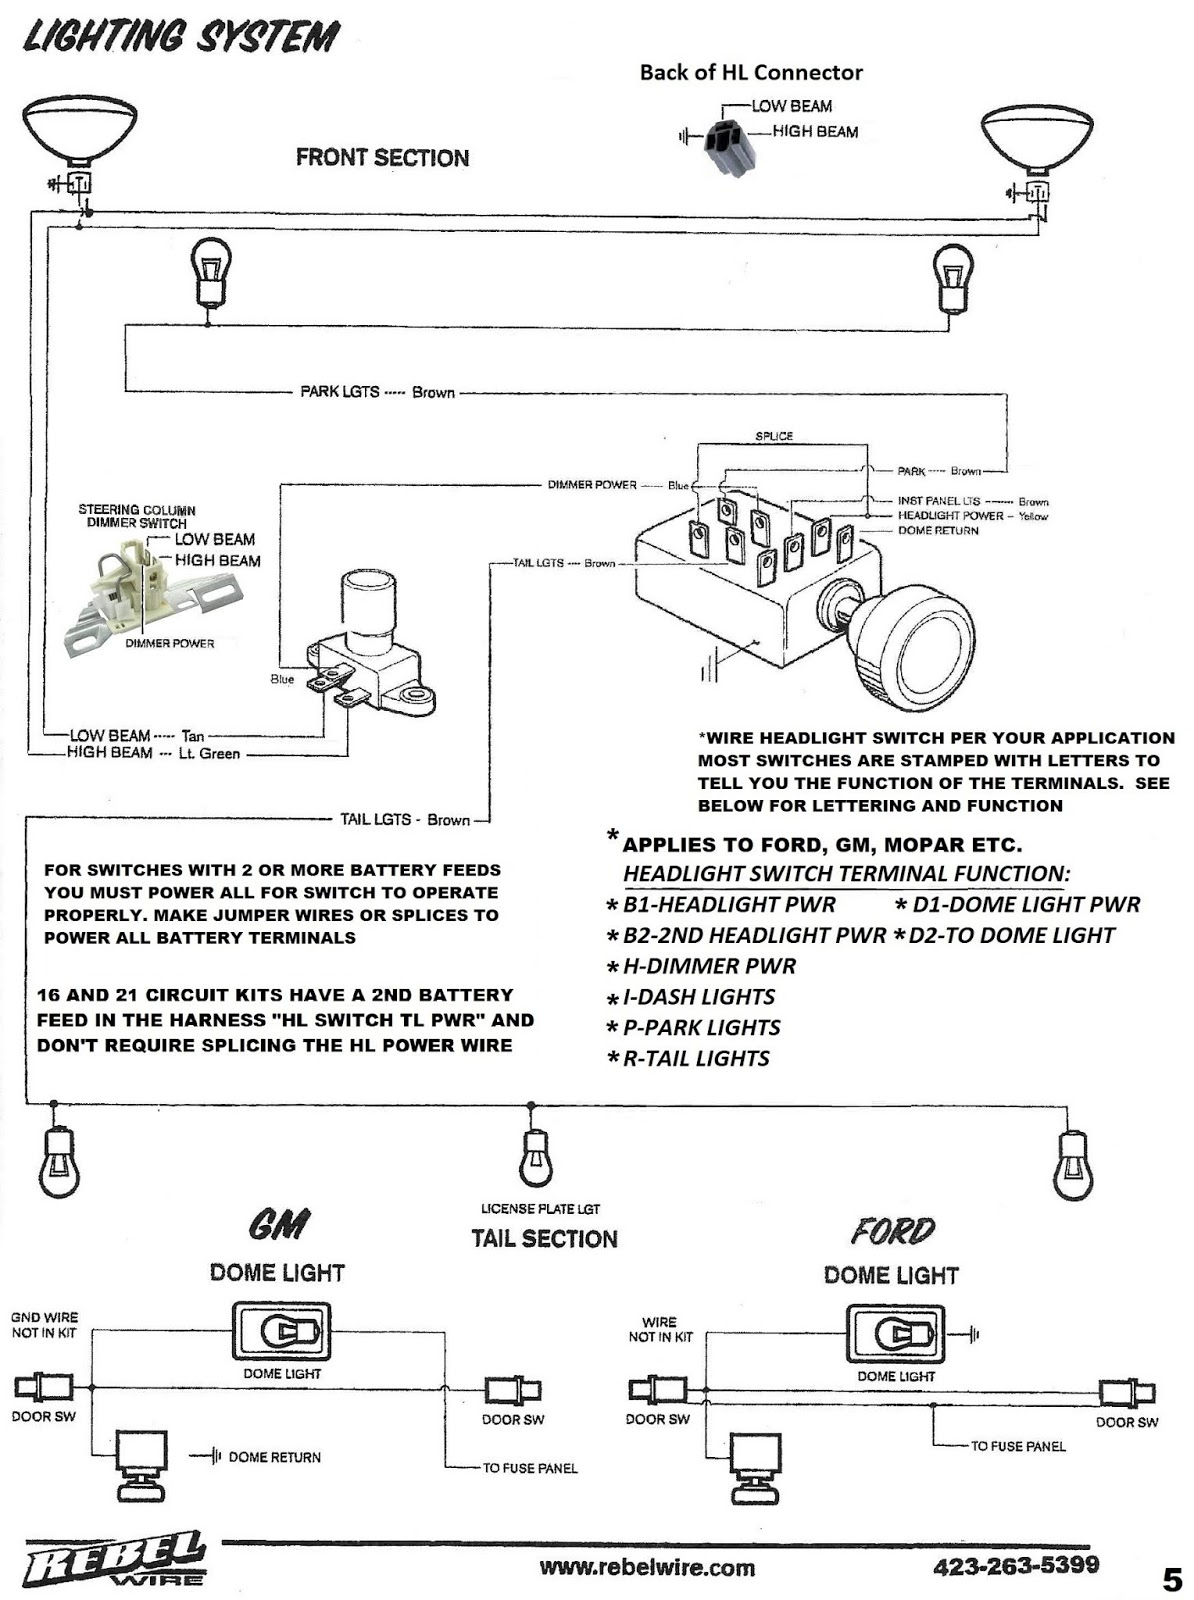 small resolution of rebel wire lighting system wiring diagram